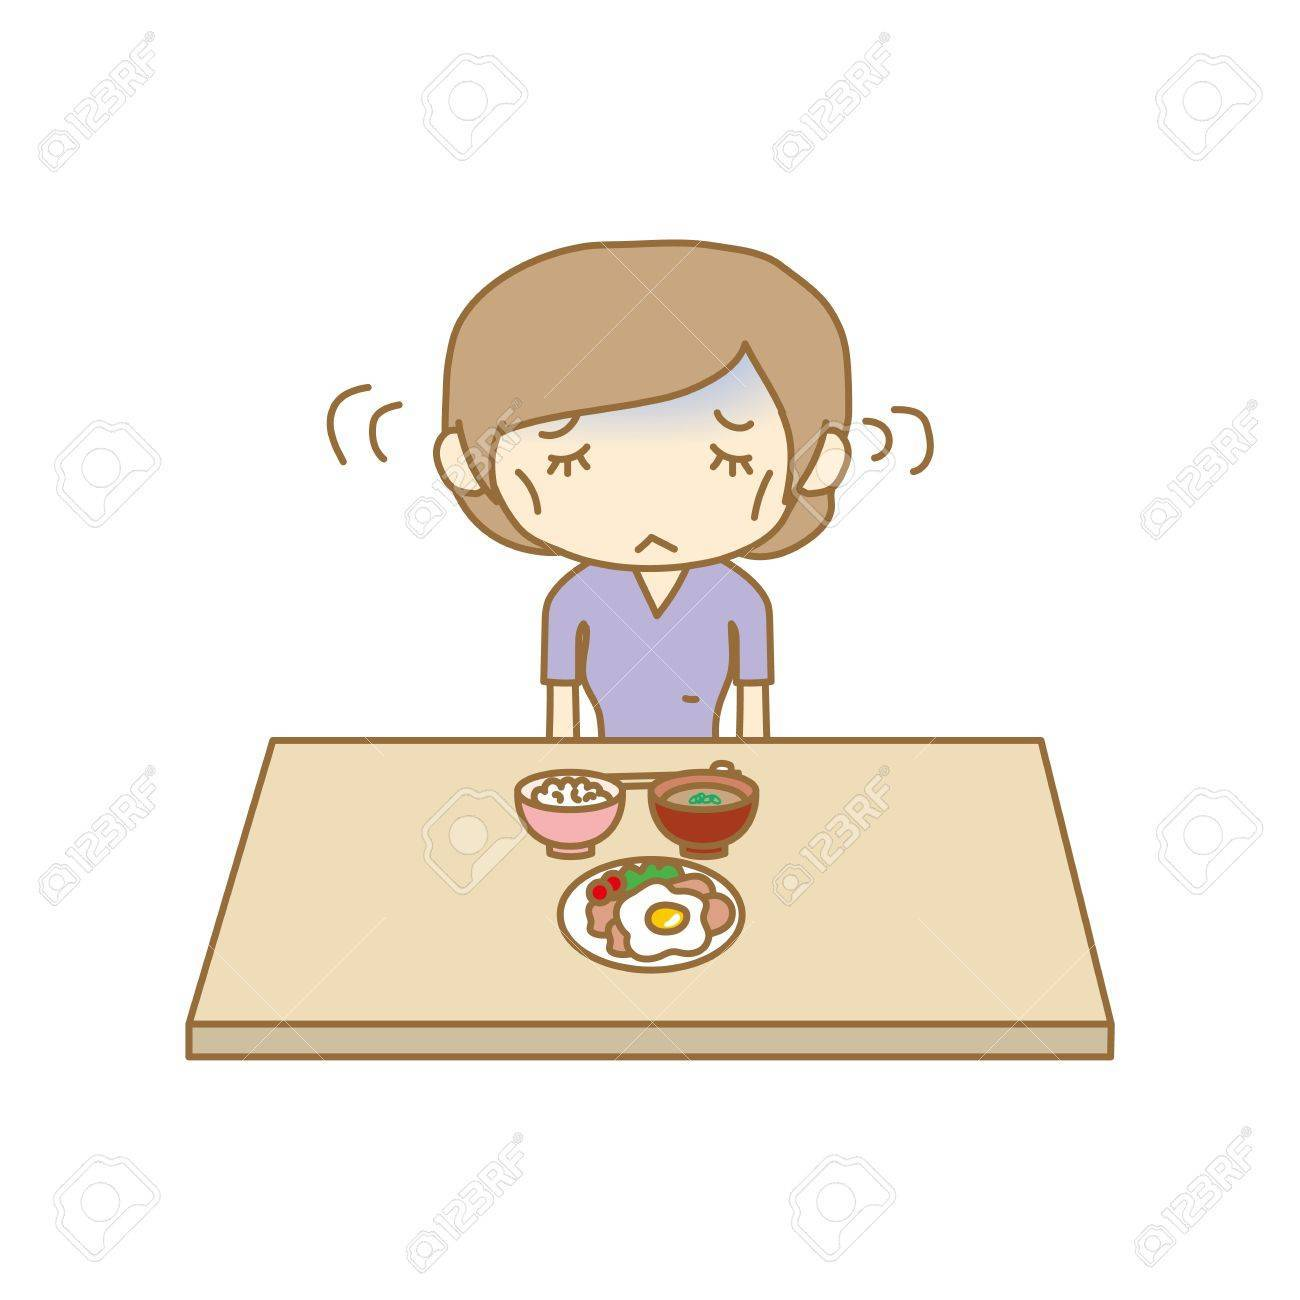 Eating disorder clipart 5 » Clipart Portal.